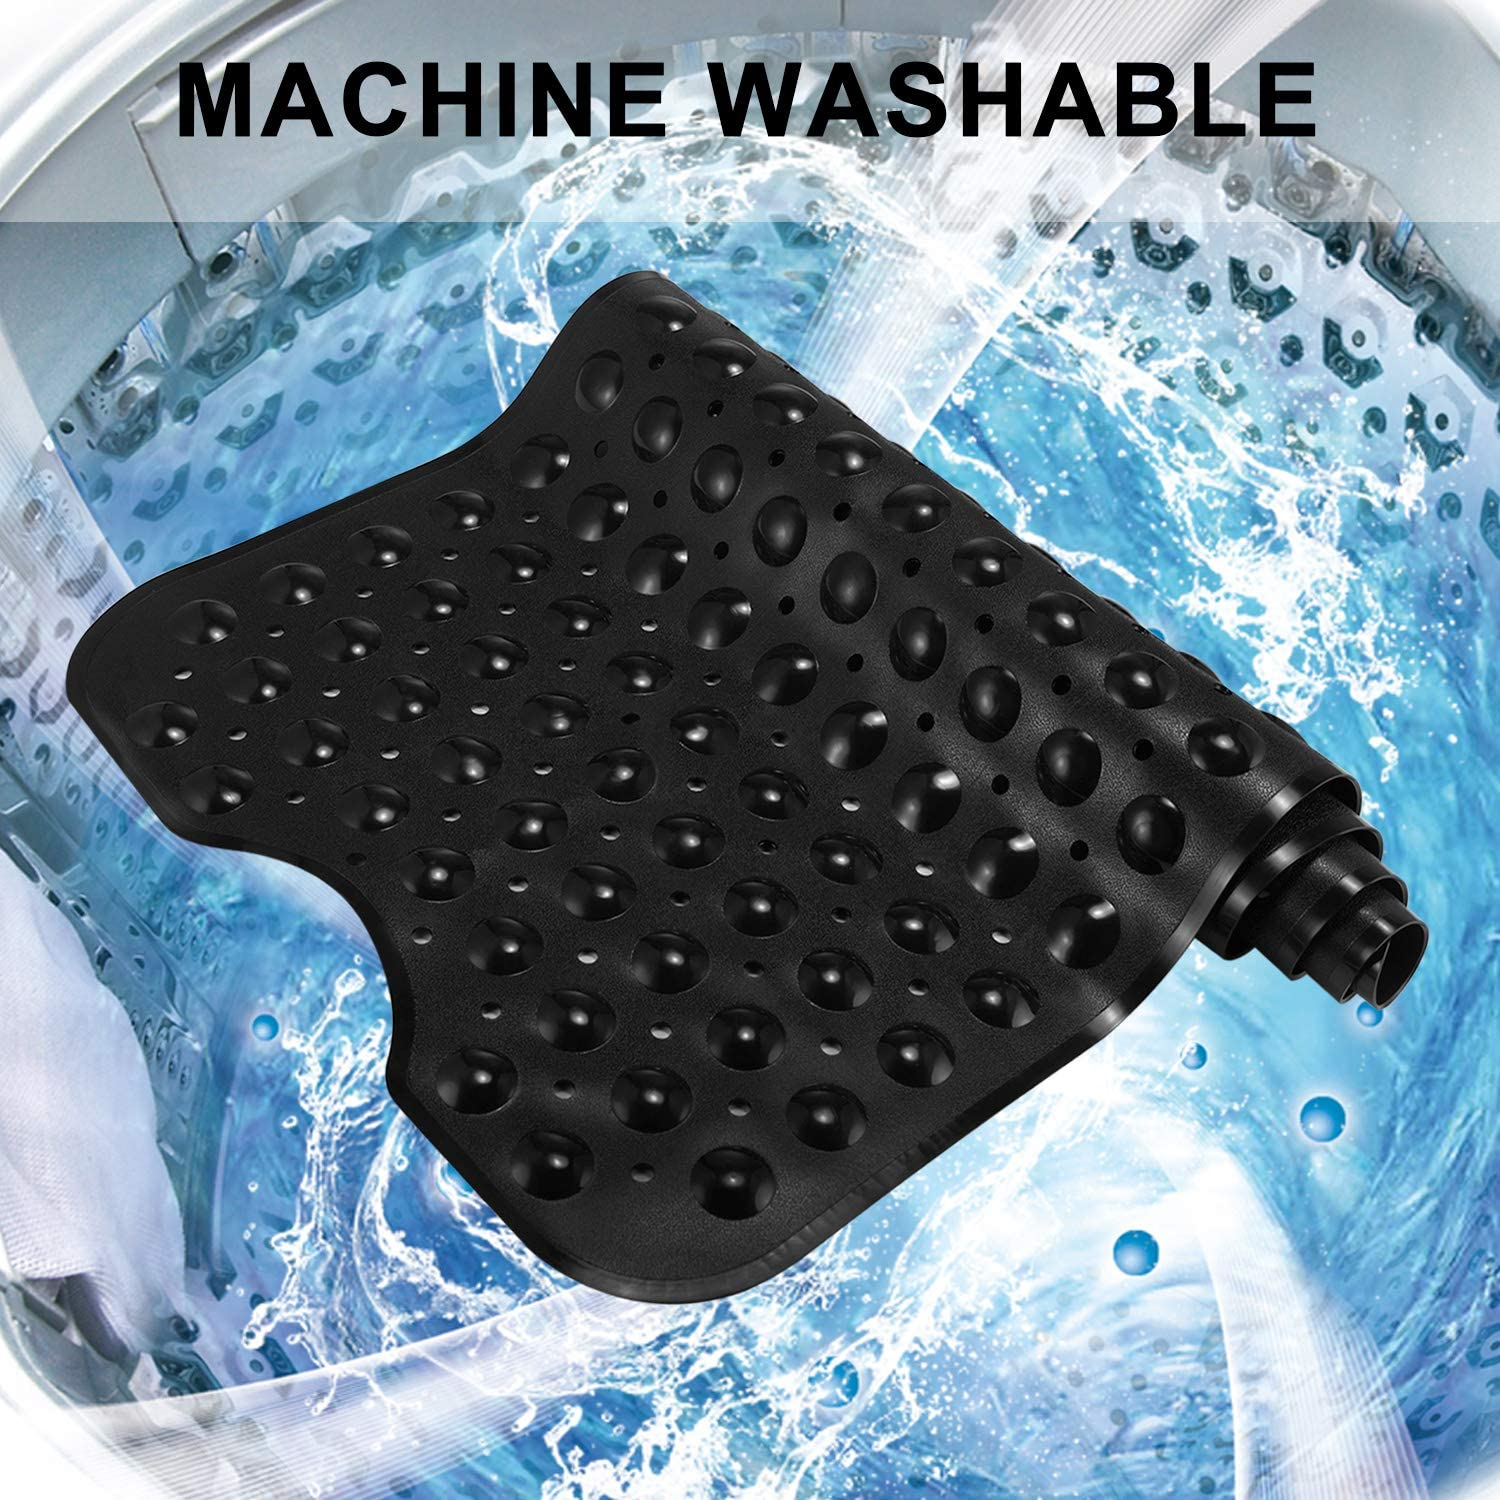 YINENN Bath Tub Shower Mat 40 x 16 Inch Non-Slip and Extra Large, Bathtub Mat with Suction Cups, Machine Washable Bathroom Mats with Drain Holes, Black : Home & Kitchen